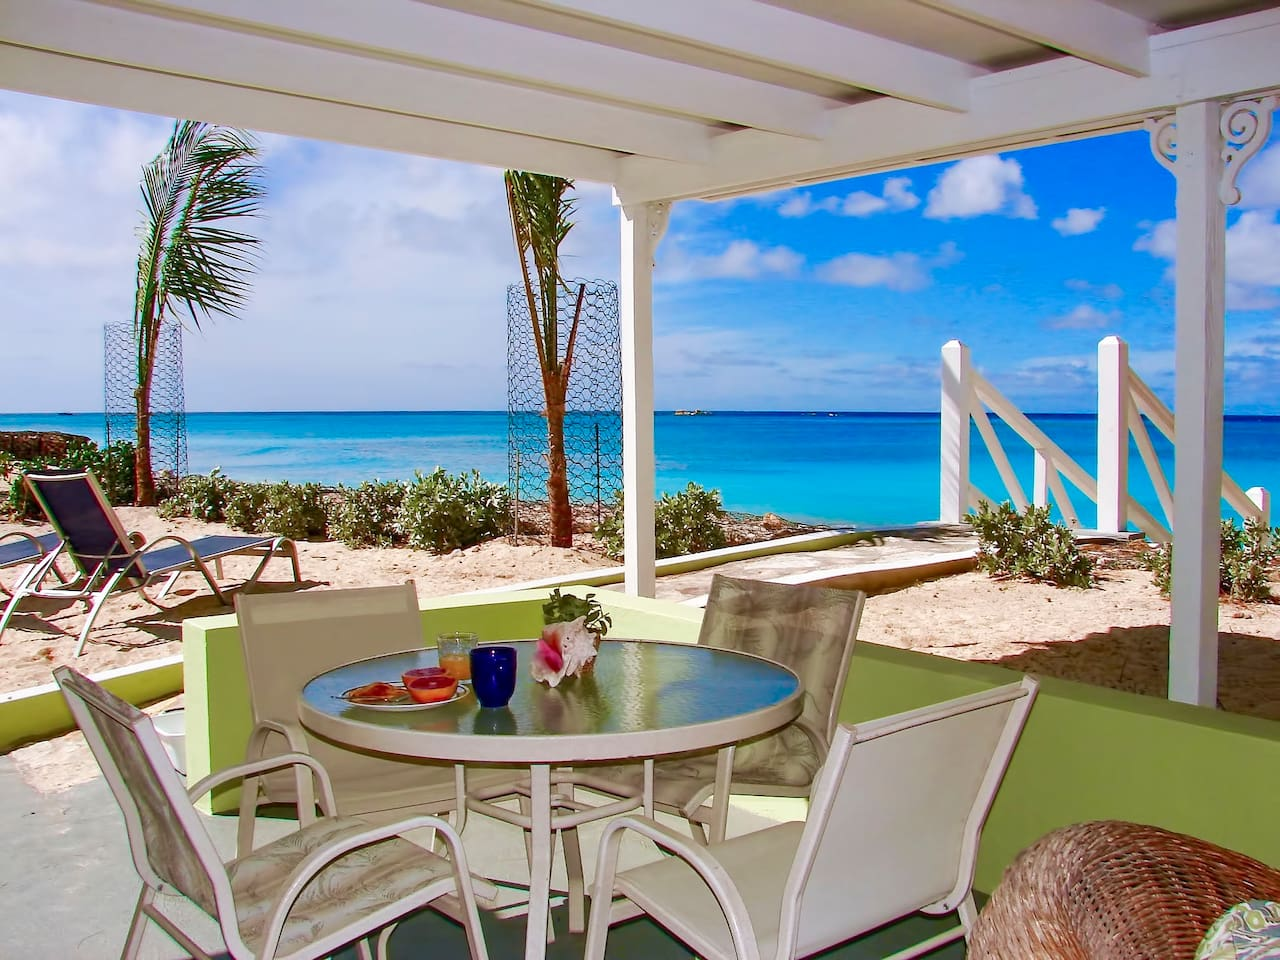 Enjoy breakfast on the veranda.